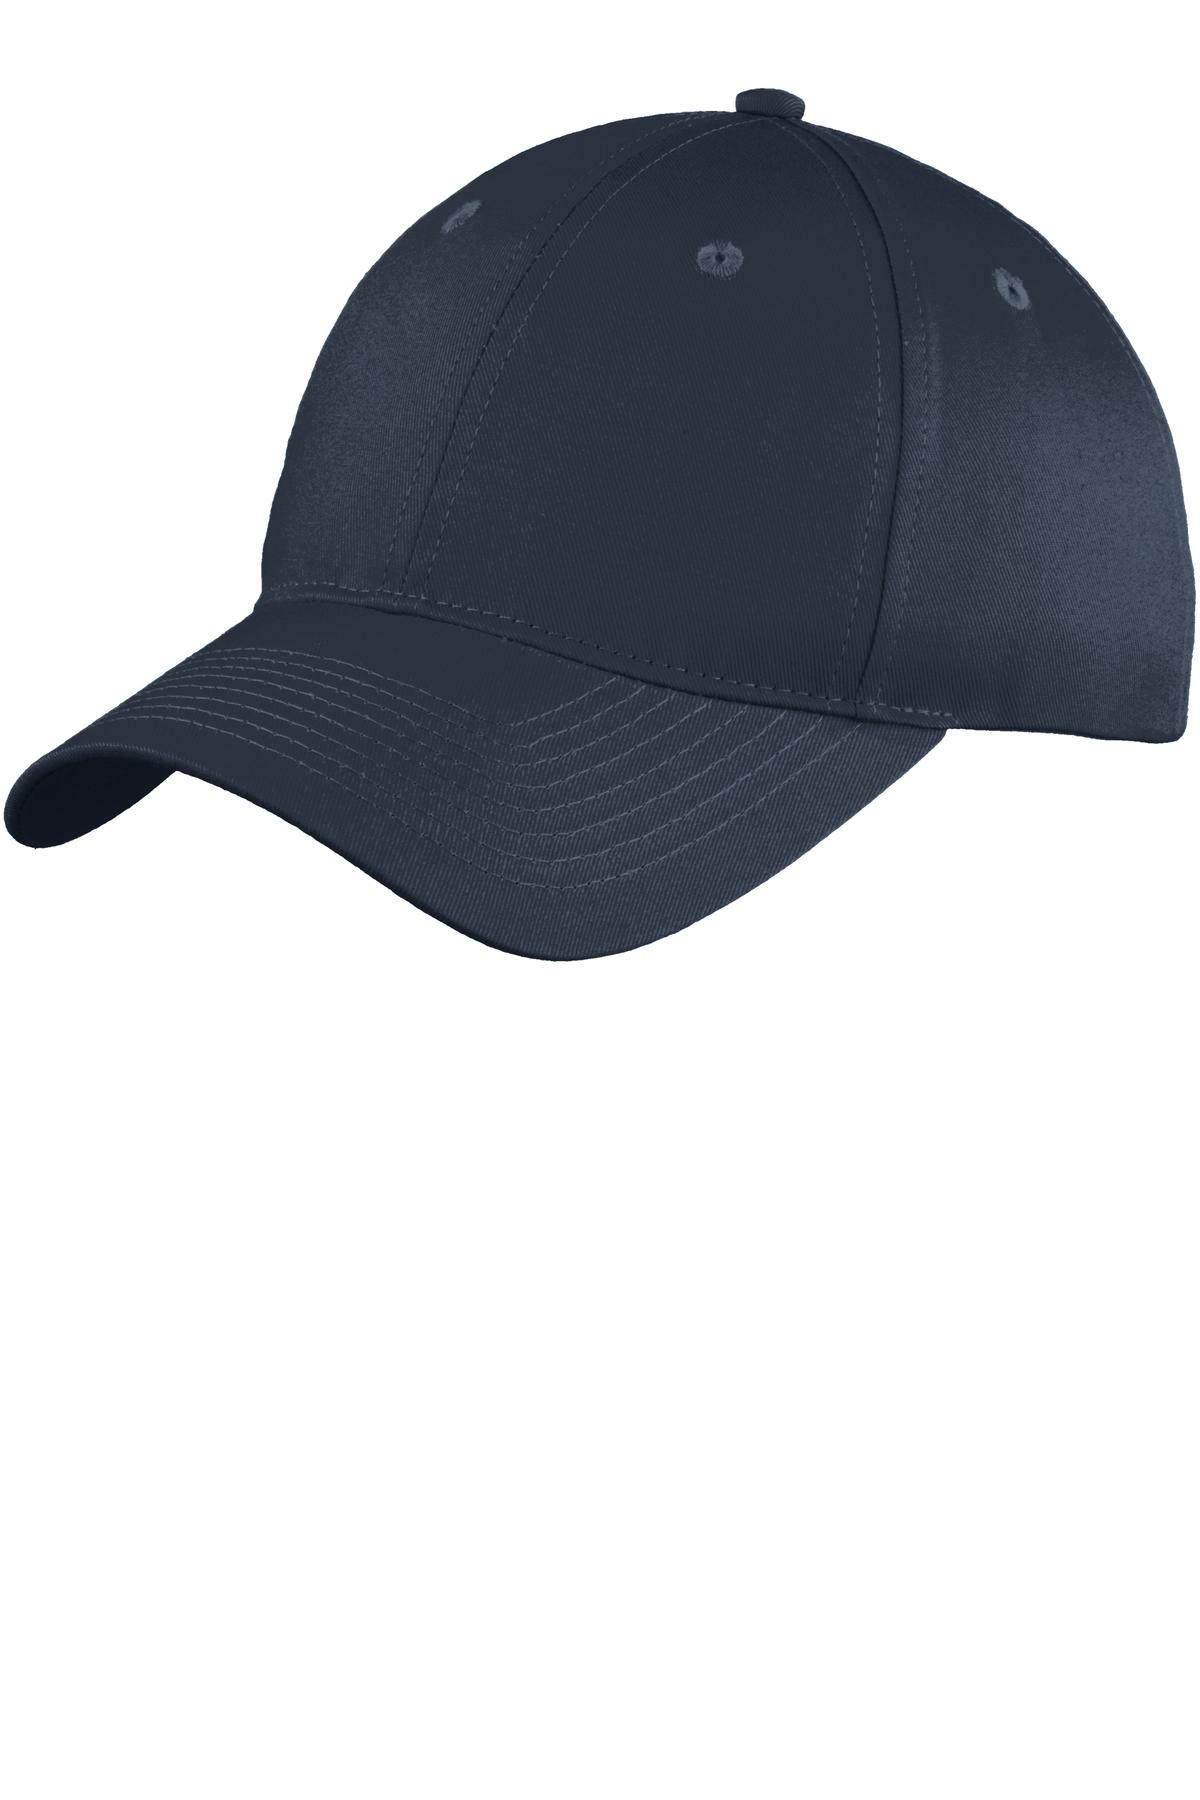 Port & Company Six-Panel Unstructured Twill Cap. C914